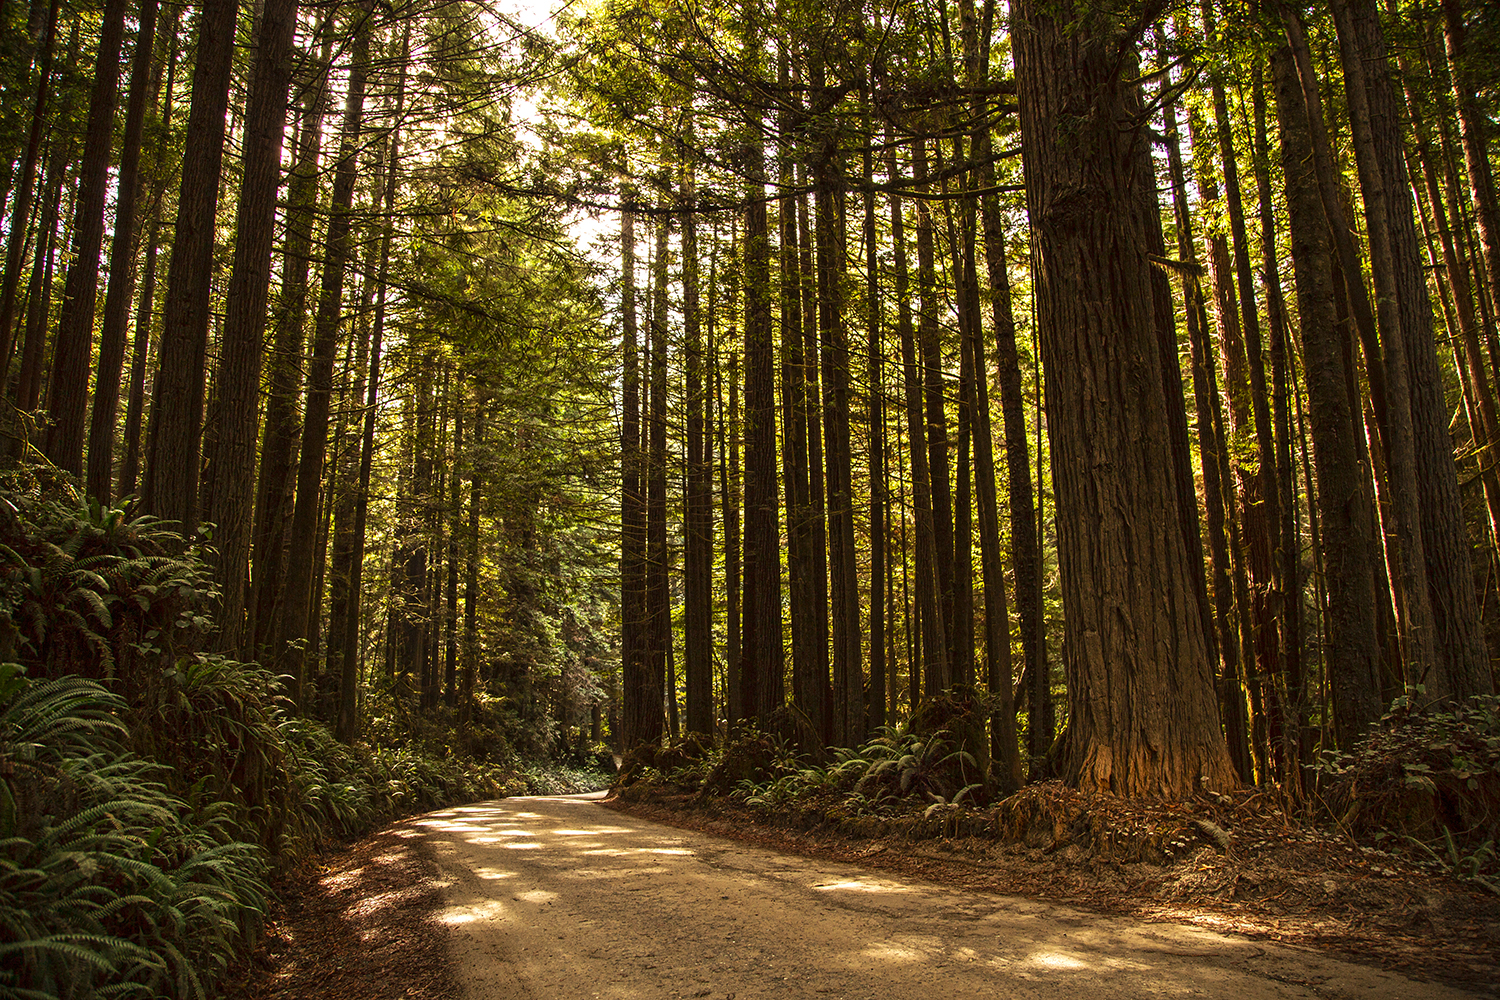 Camping at Redwoods National Park